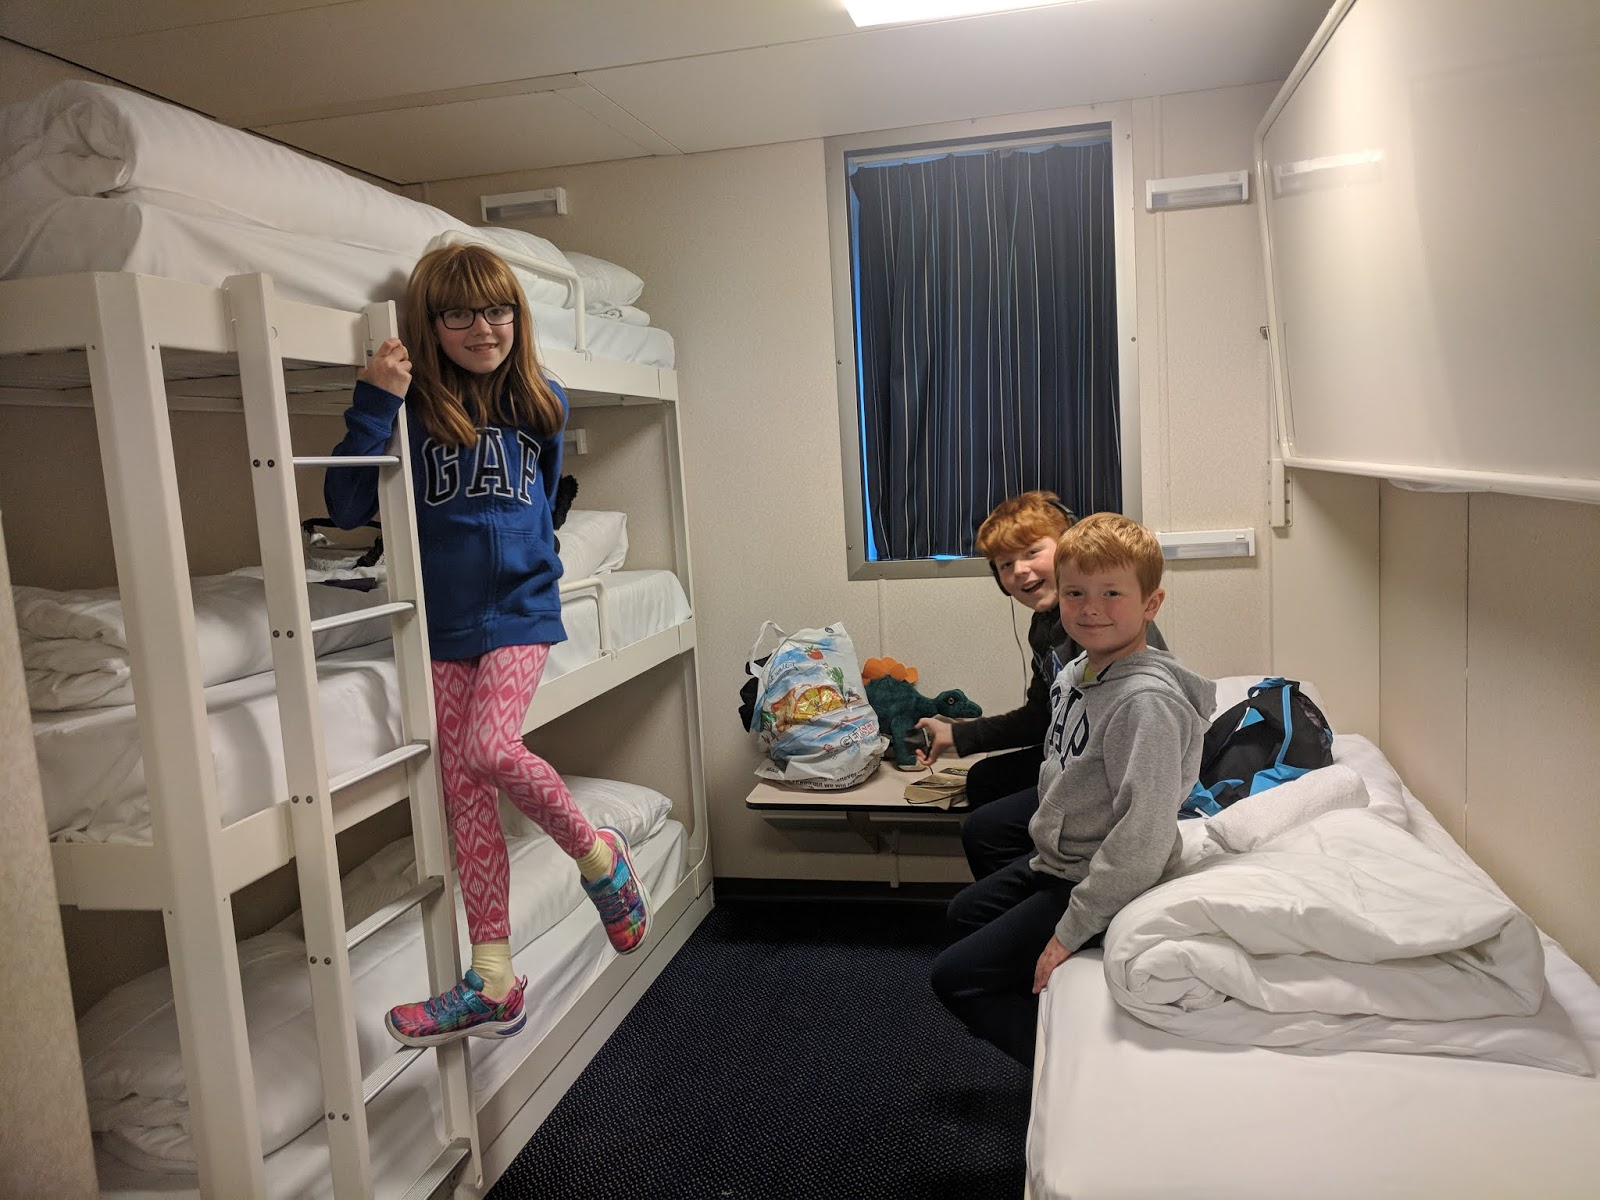 The Ultimate Guide to Staying at Duinrell with Eurocamp DFDS Seaways 5 berth seaview cabin